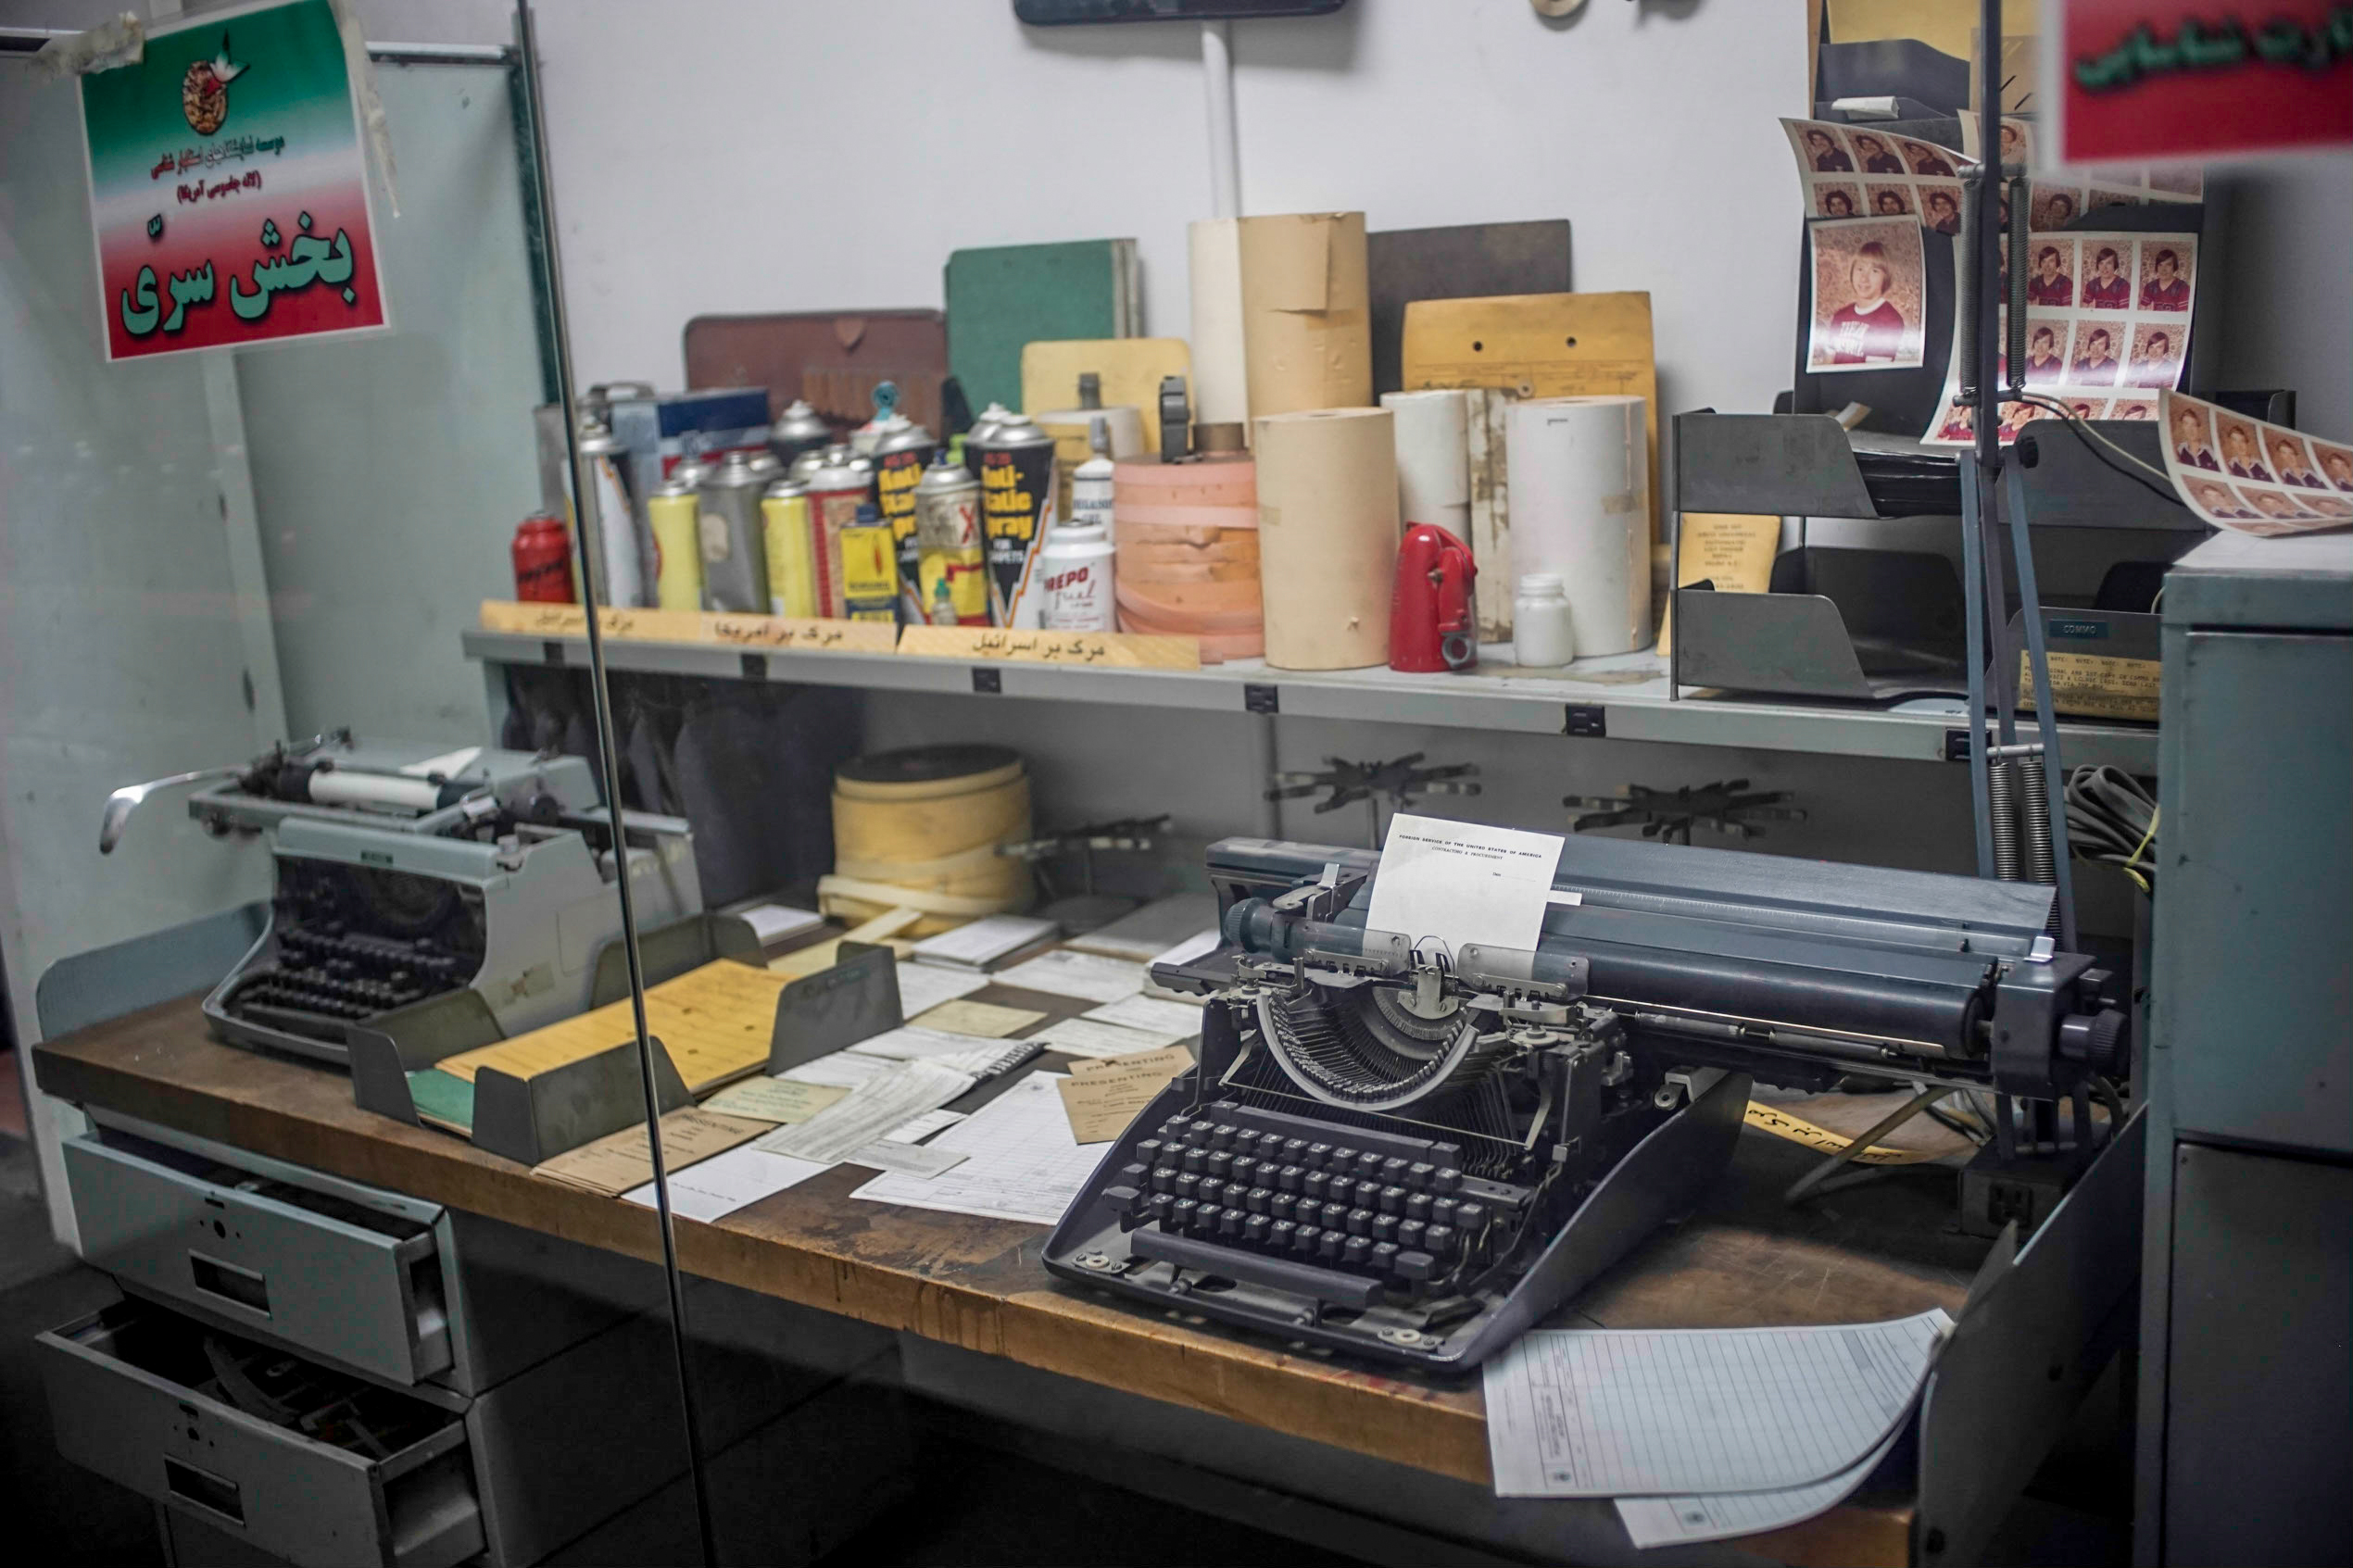 A display case showing what the museum claims was allegedly a desk of tools and equipment for making counterfeit documents and passports for its spies.  As with virtually all the items on display inside and outside the museum, it's impossible to verify their authenticity.